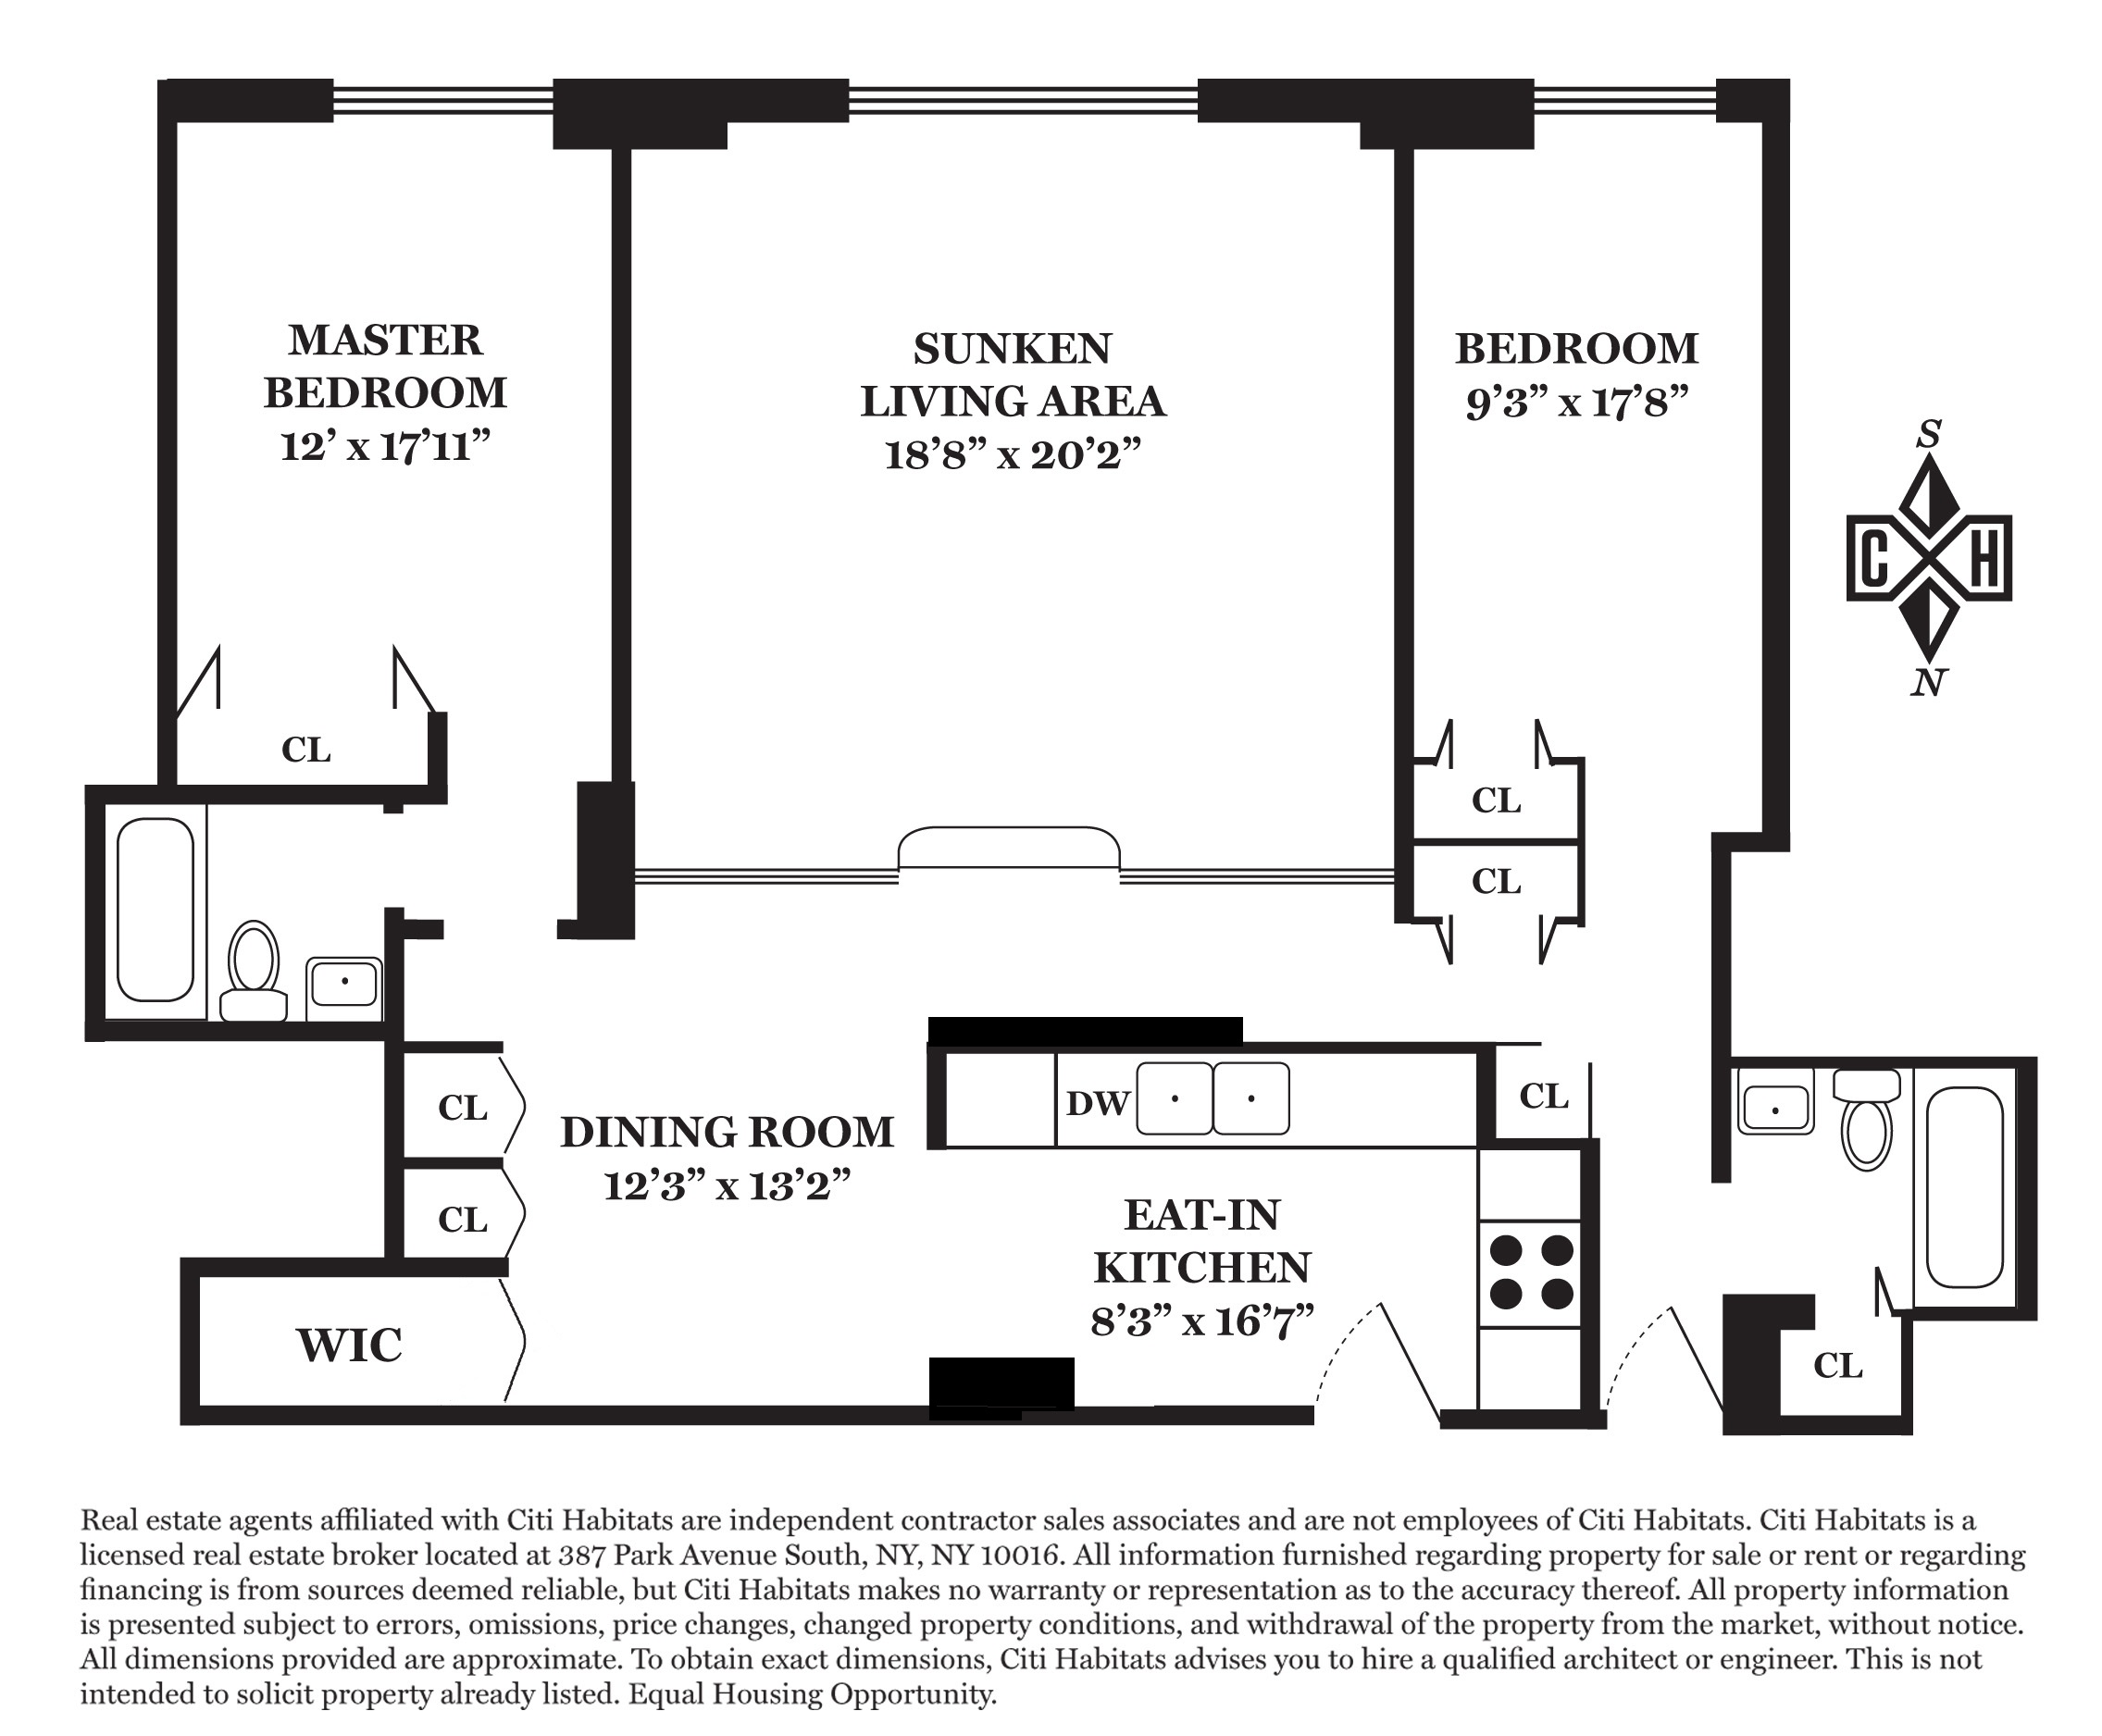 Floor plan of The Wakefield, 525 East 80th St, 3D - Upper East Side, New York